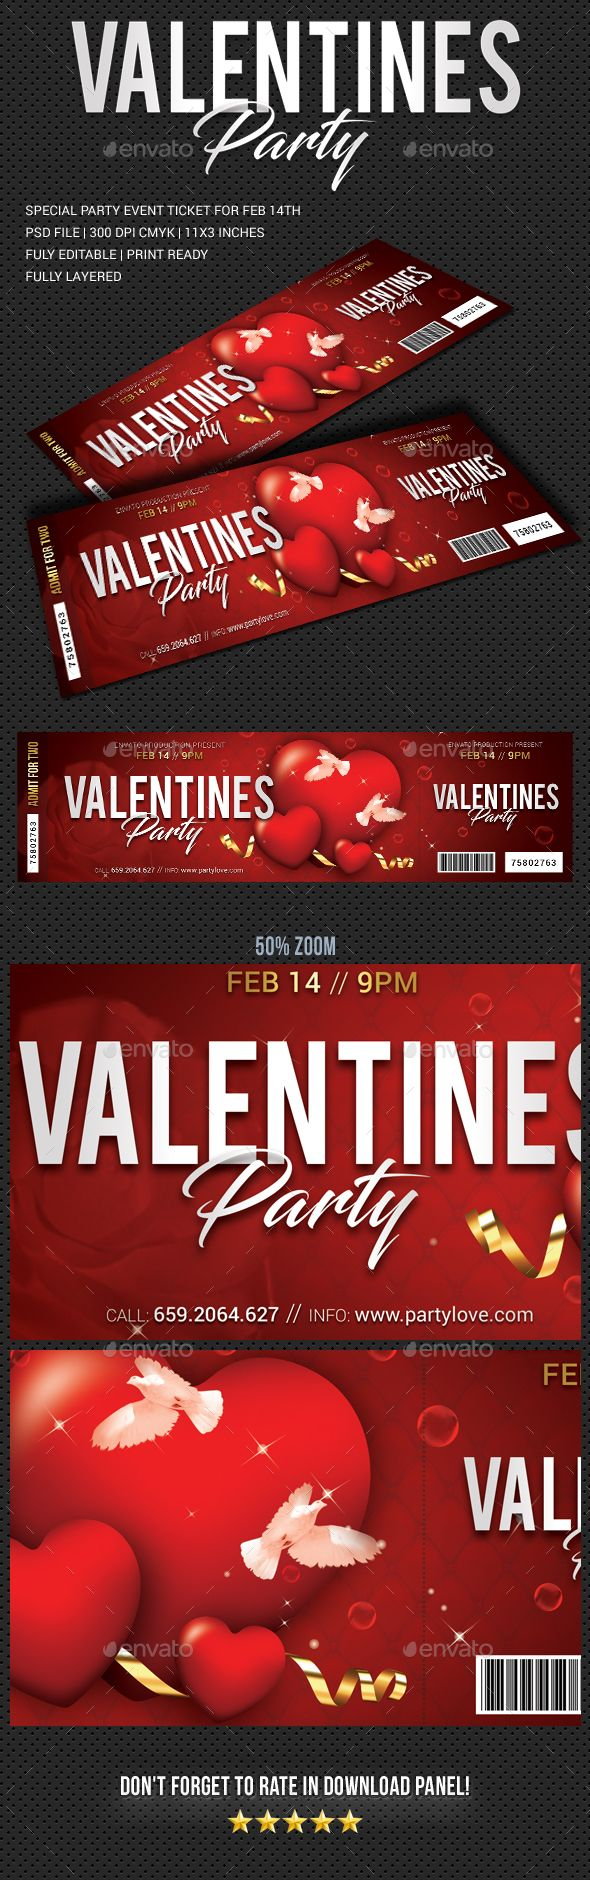 Valentines Party Event Ticket Cards Invites Print Templates